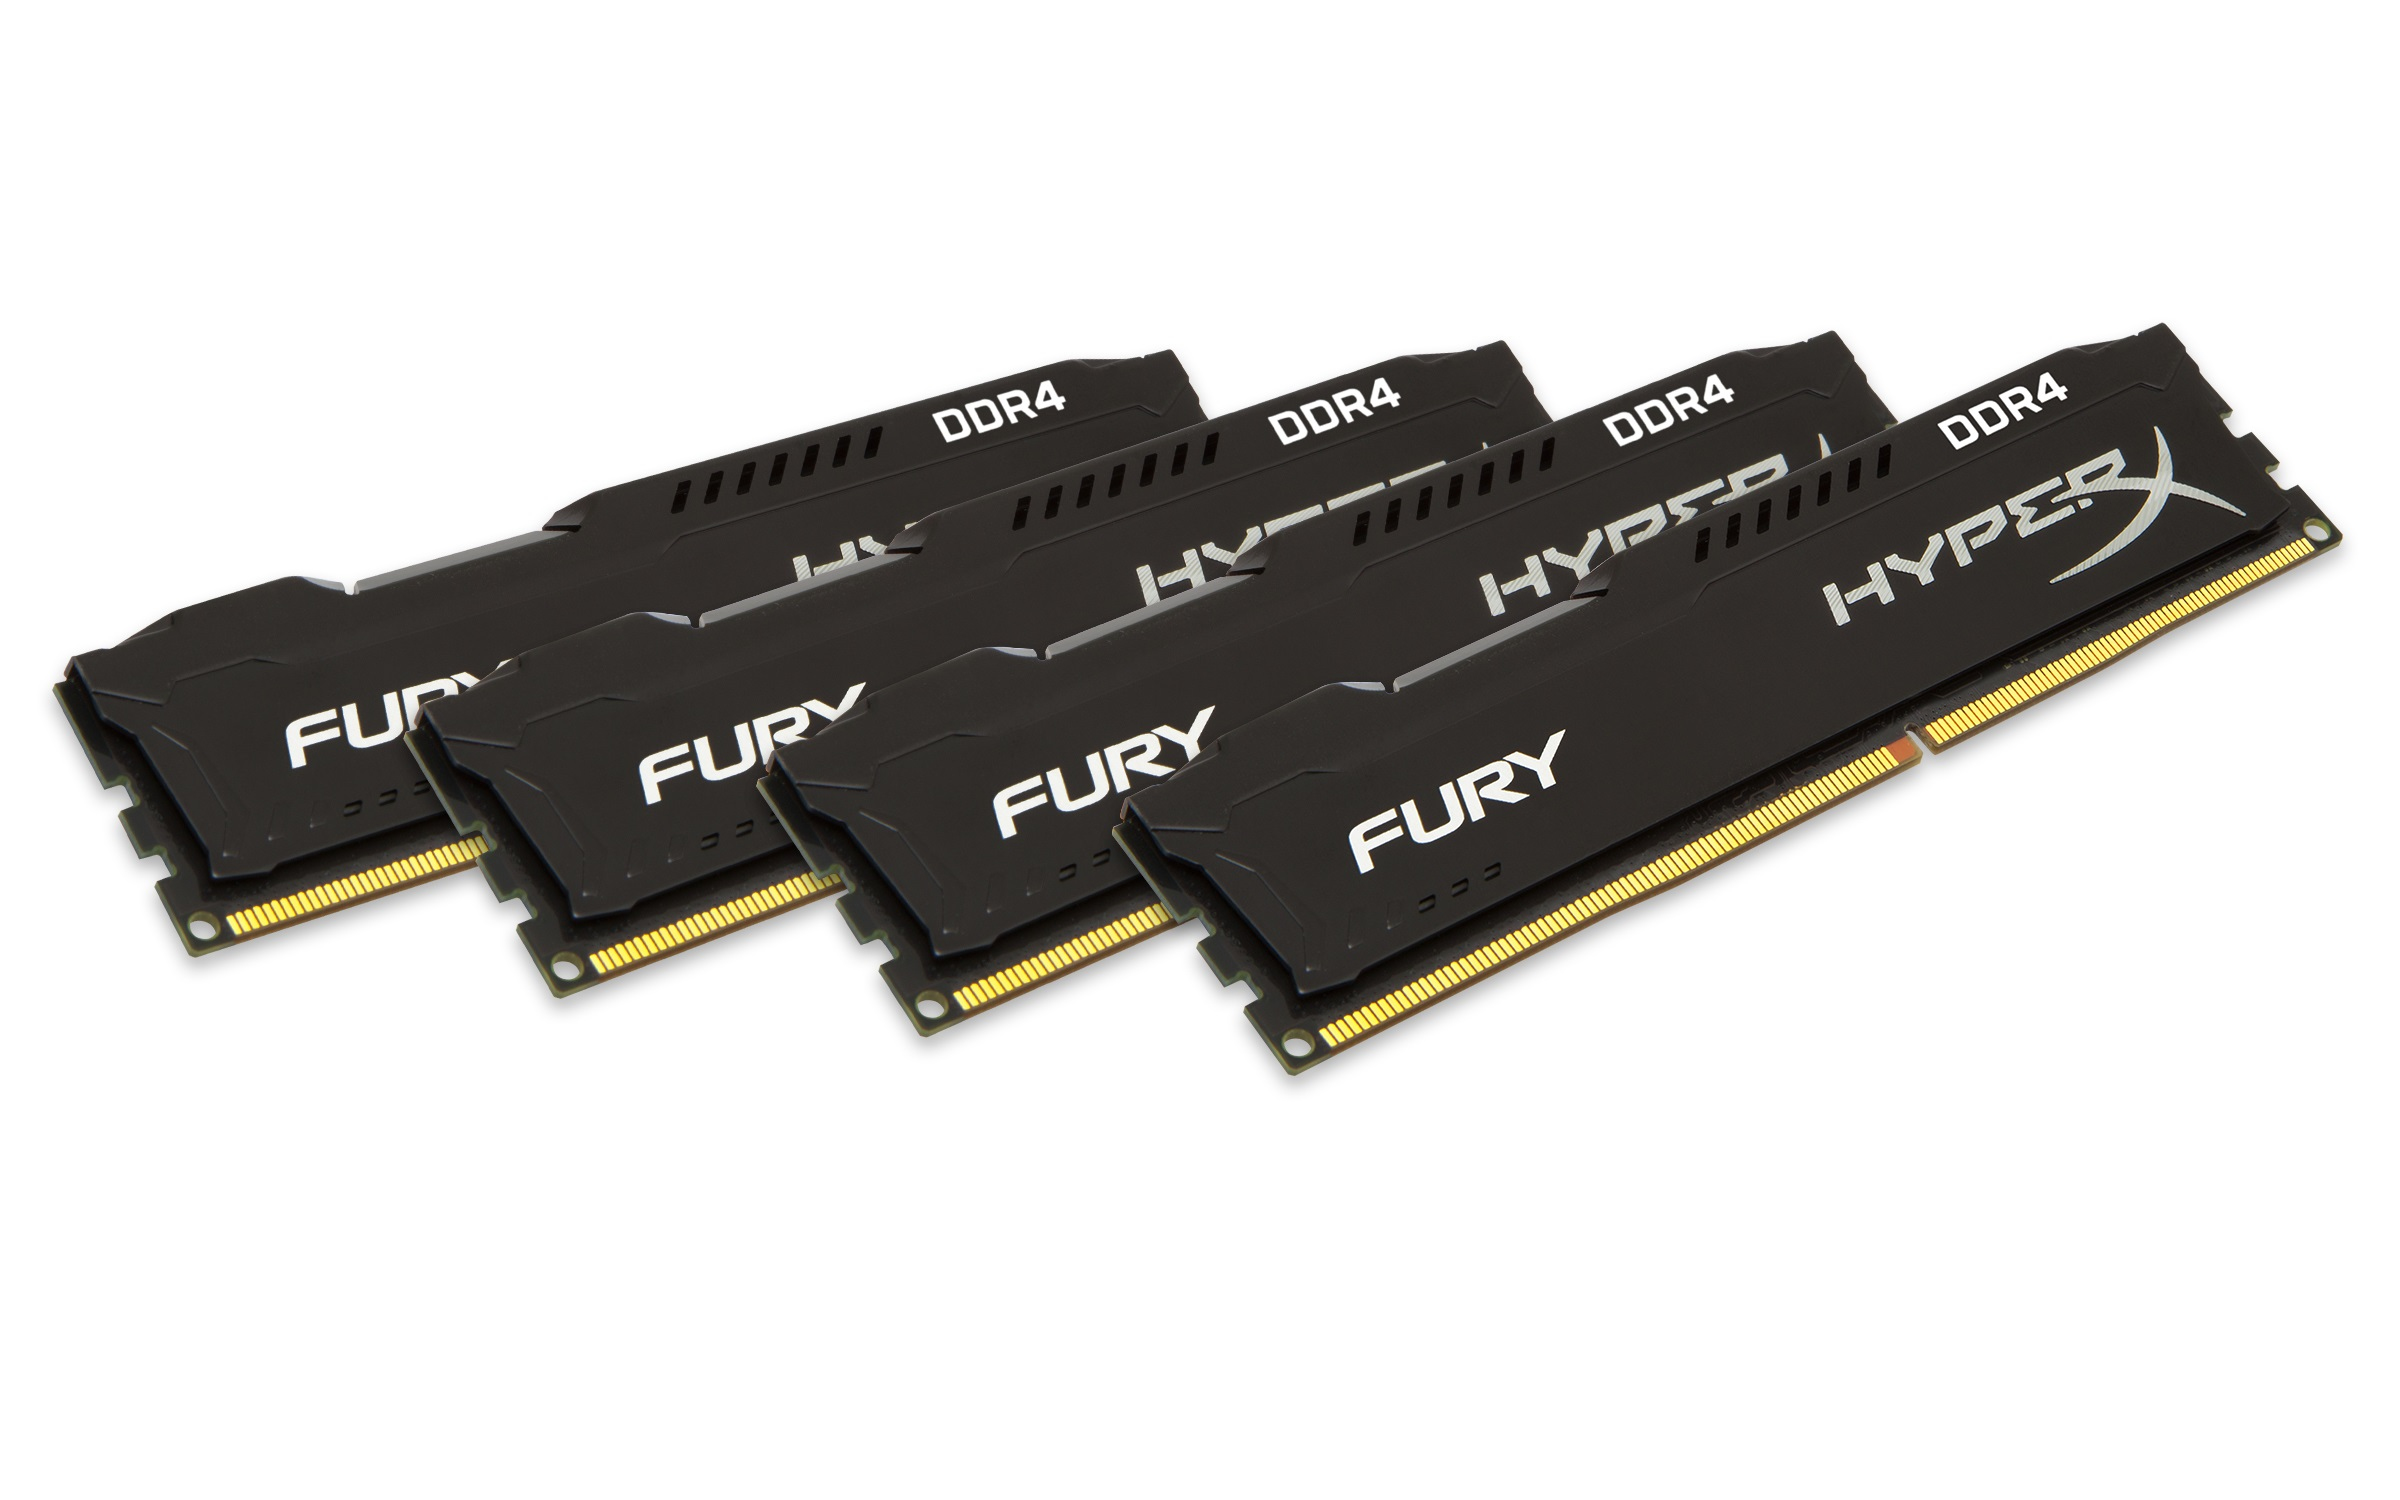 HyperX FURY 32GB 2400MHz DDR4 Kit of 4 32GB DDR4 2400MHz memory module